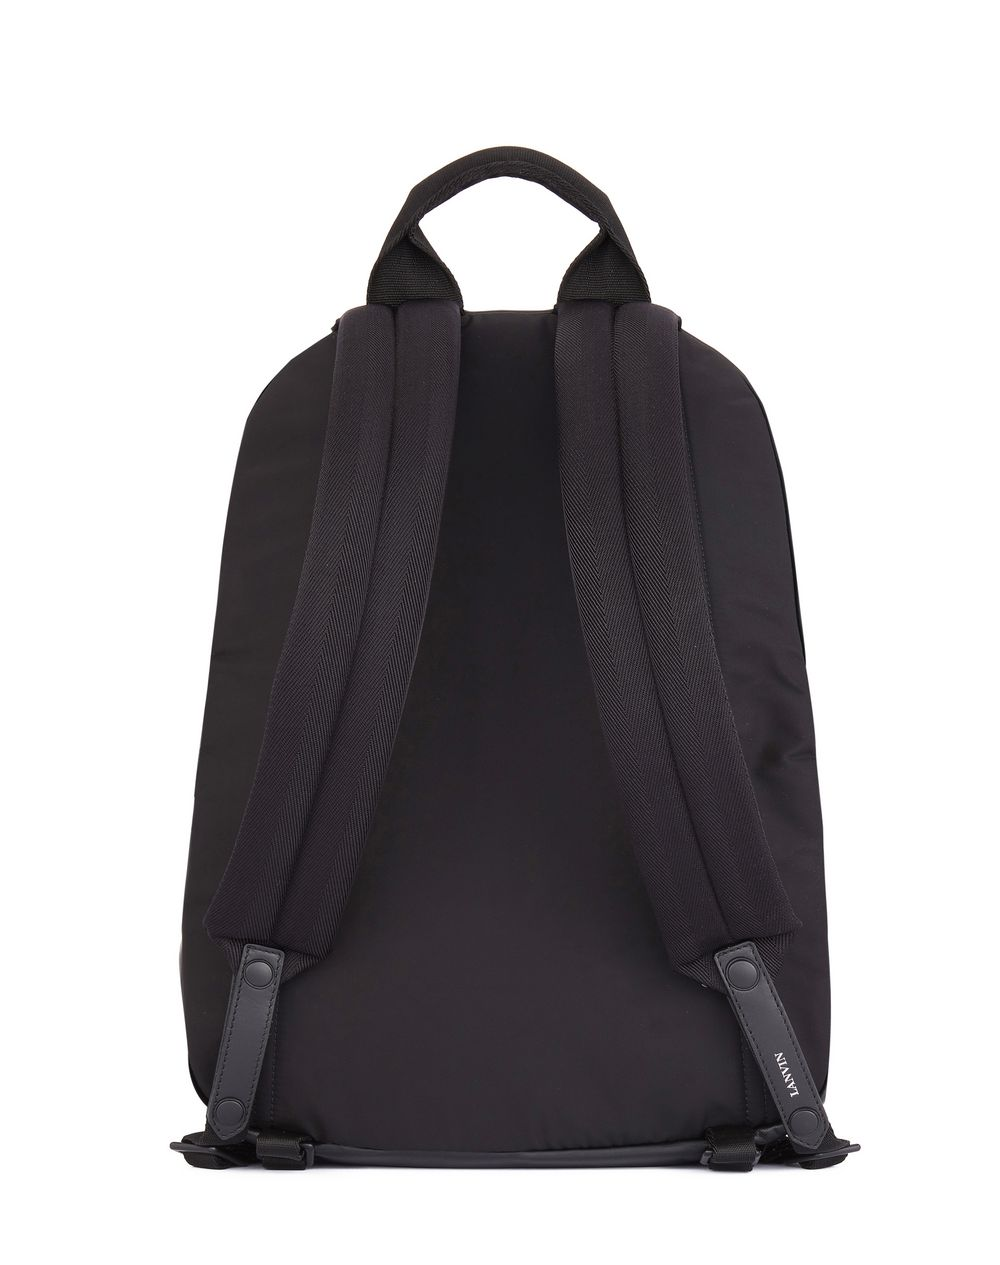 BACKPACK WITH PATCHES - Lanvin